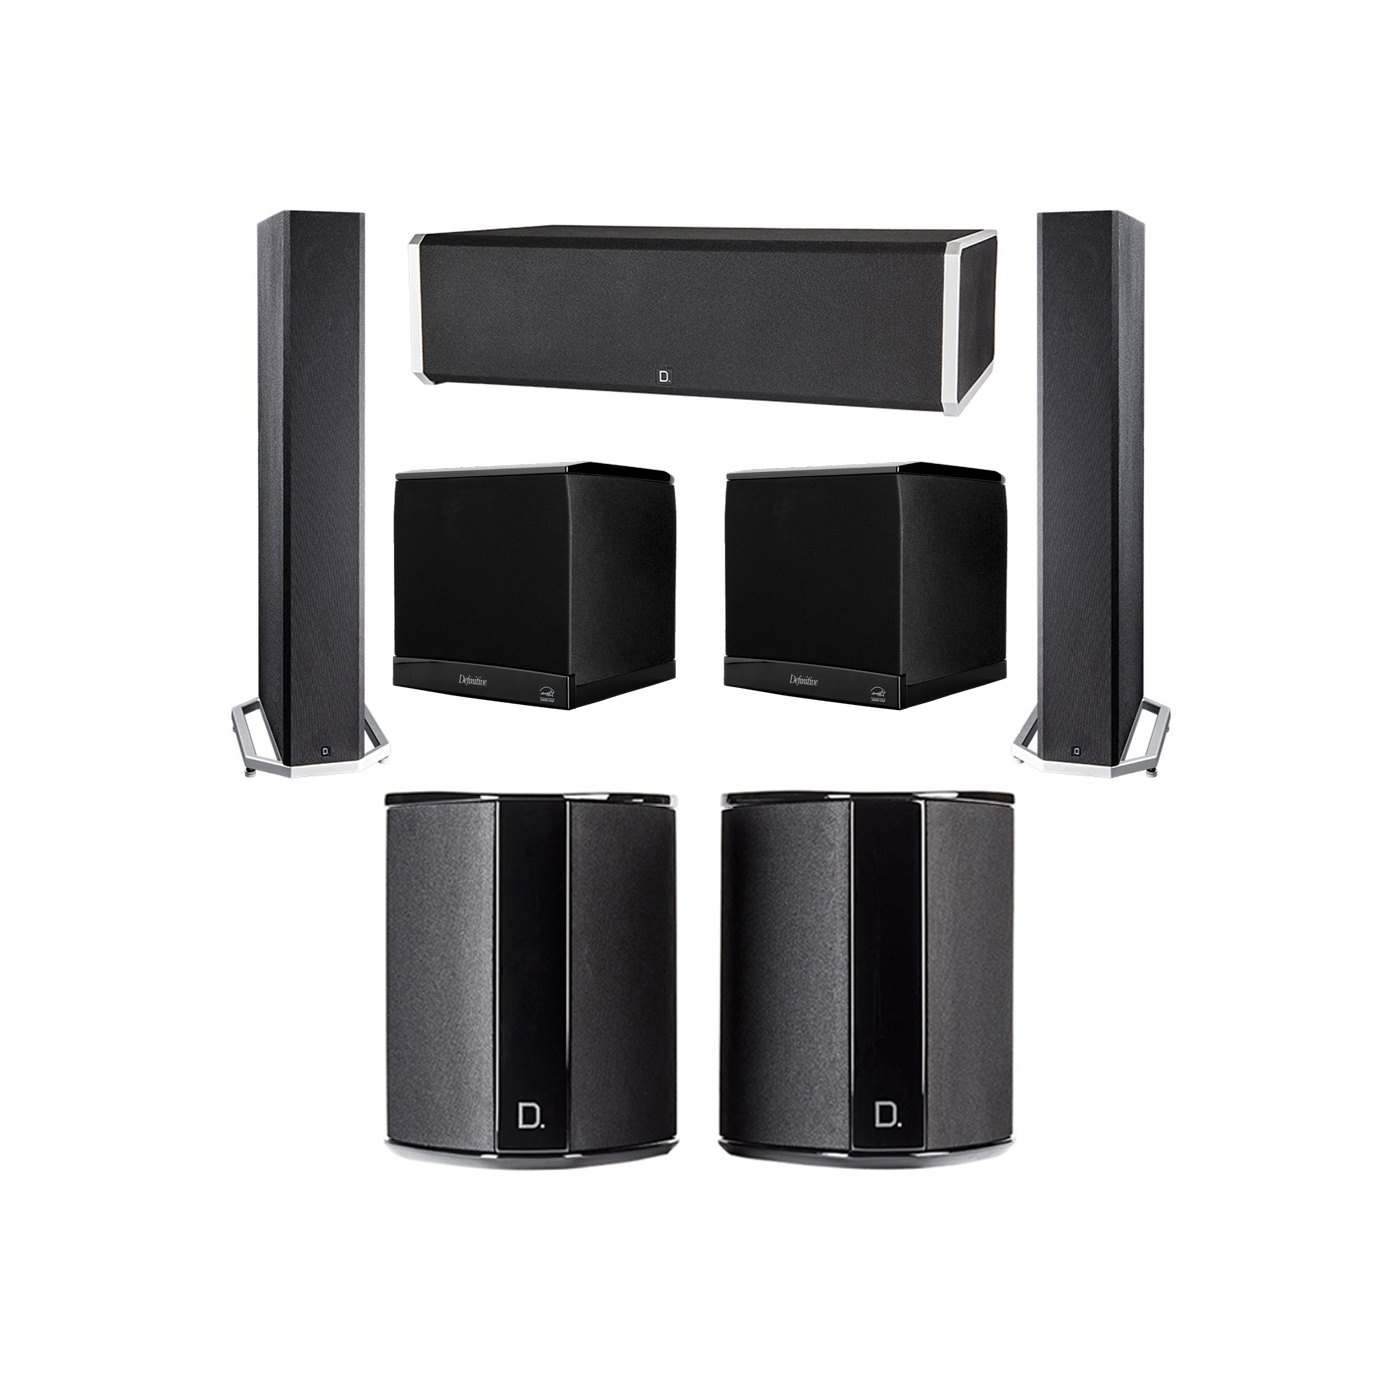 Definitive Technology 5.2 System with 2 BP9040 Tower Speakers, 1 CS9060 Center Channel Speaker, 2 SR9040 Surround Speaker, 2 Definitive Technology SuperCube 4000 Powered Subwoofer